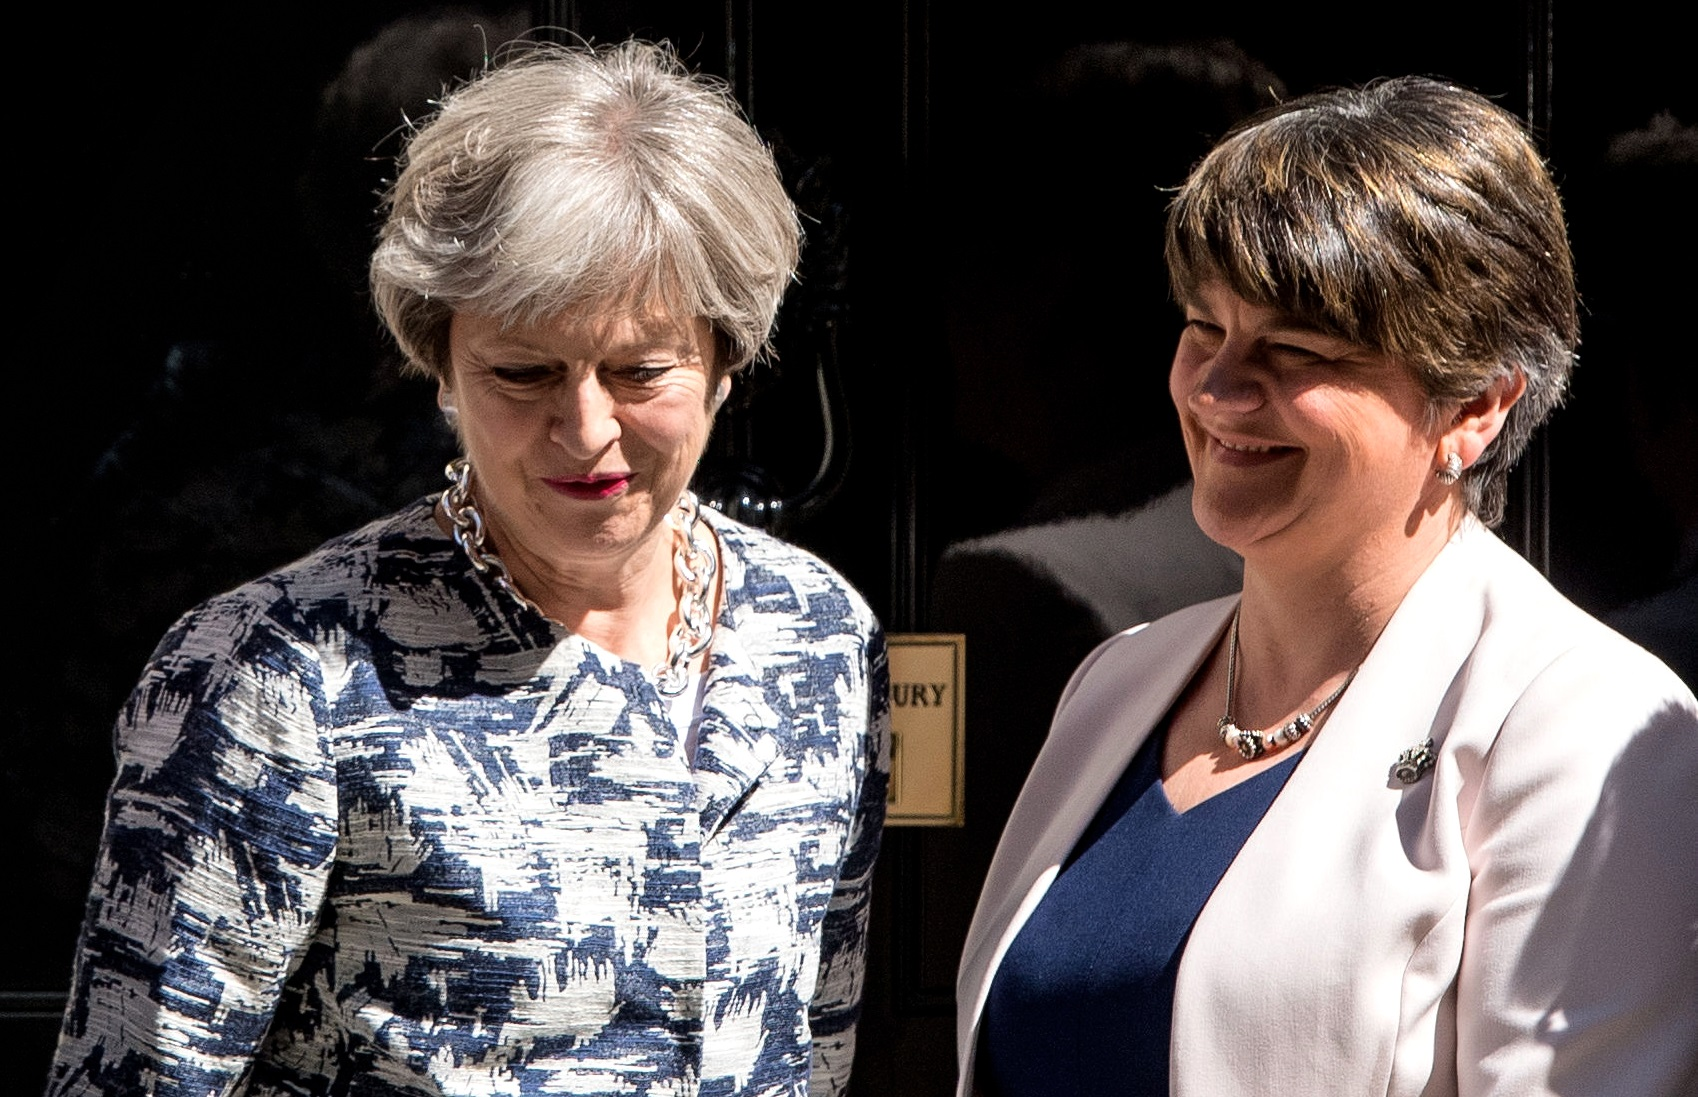 DUP leader Arlene Foster and Theresa May after agreeing the deal on key Commons votes